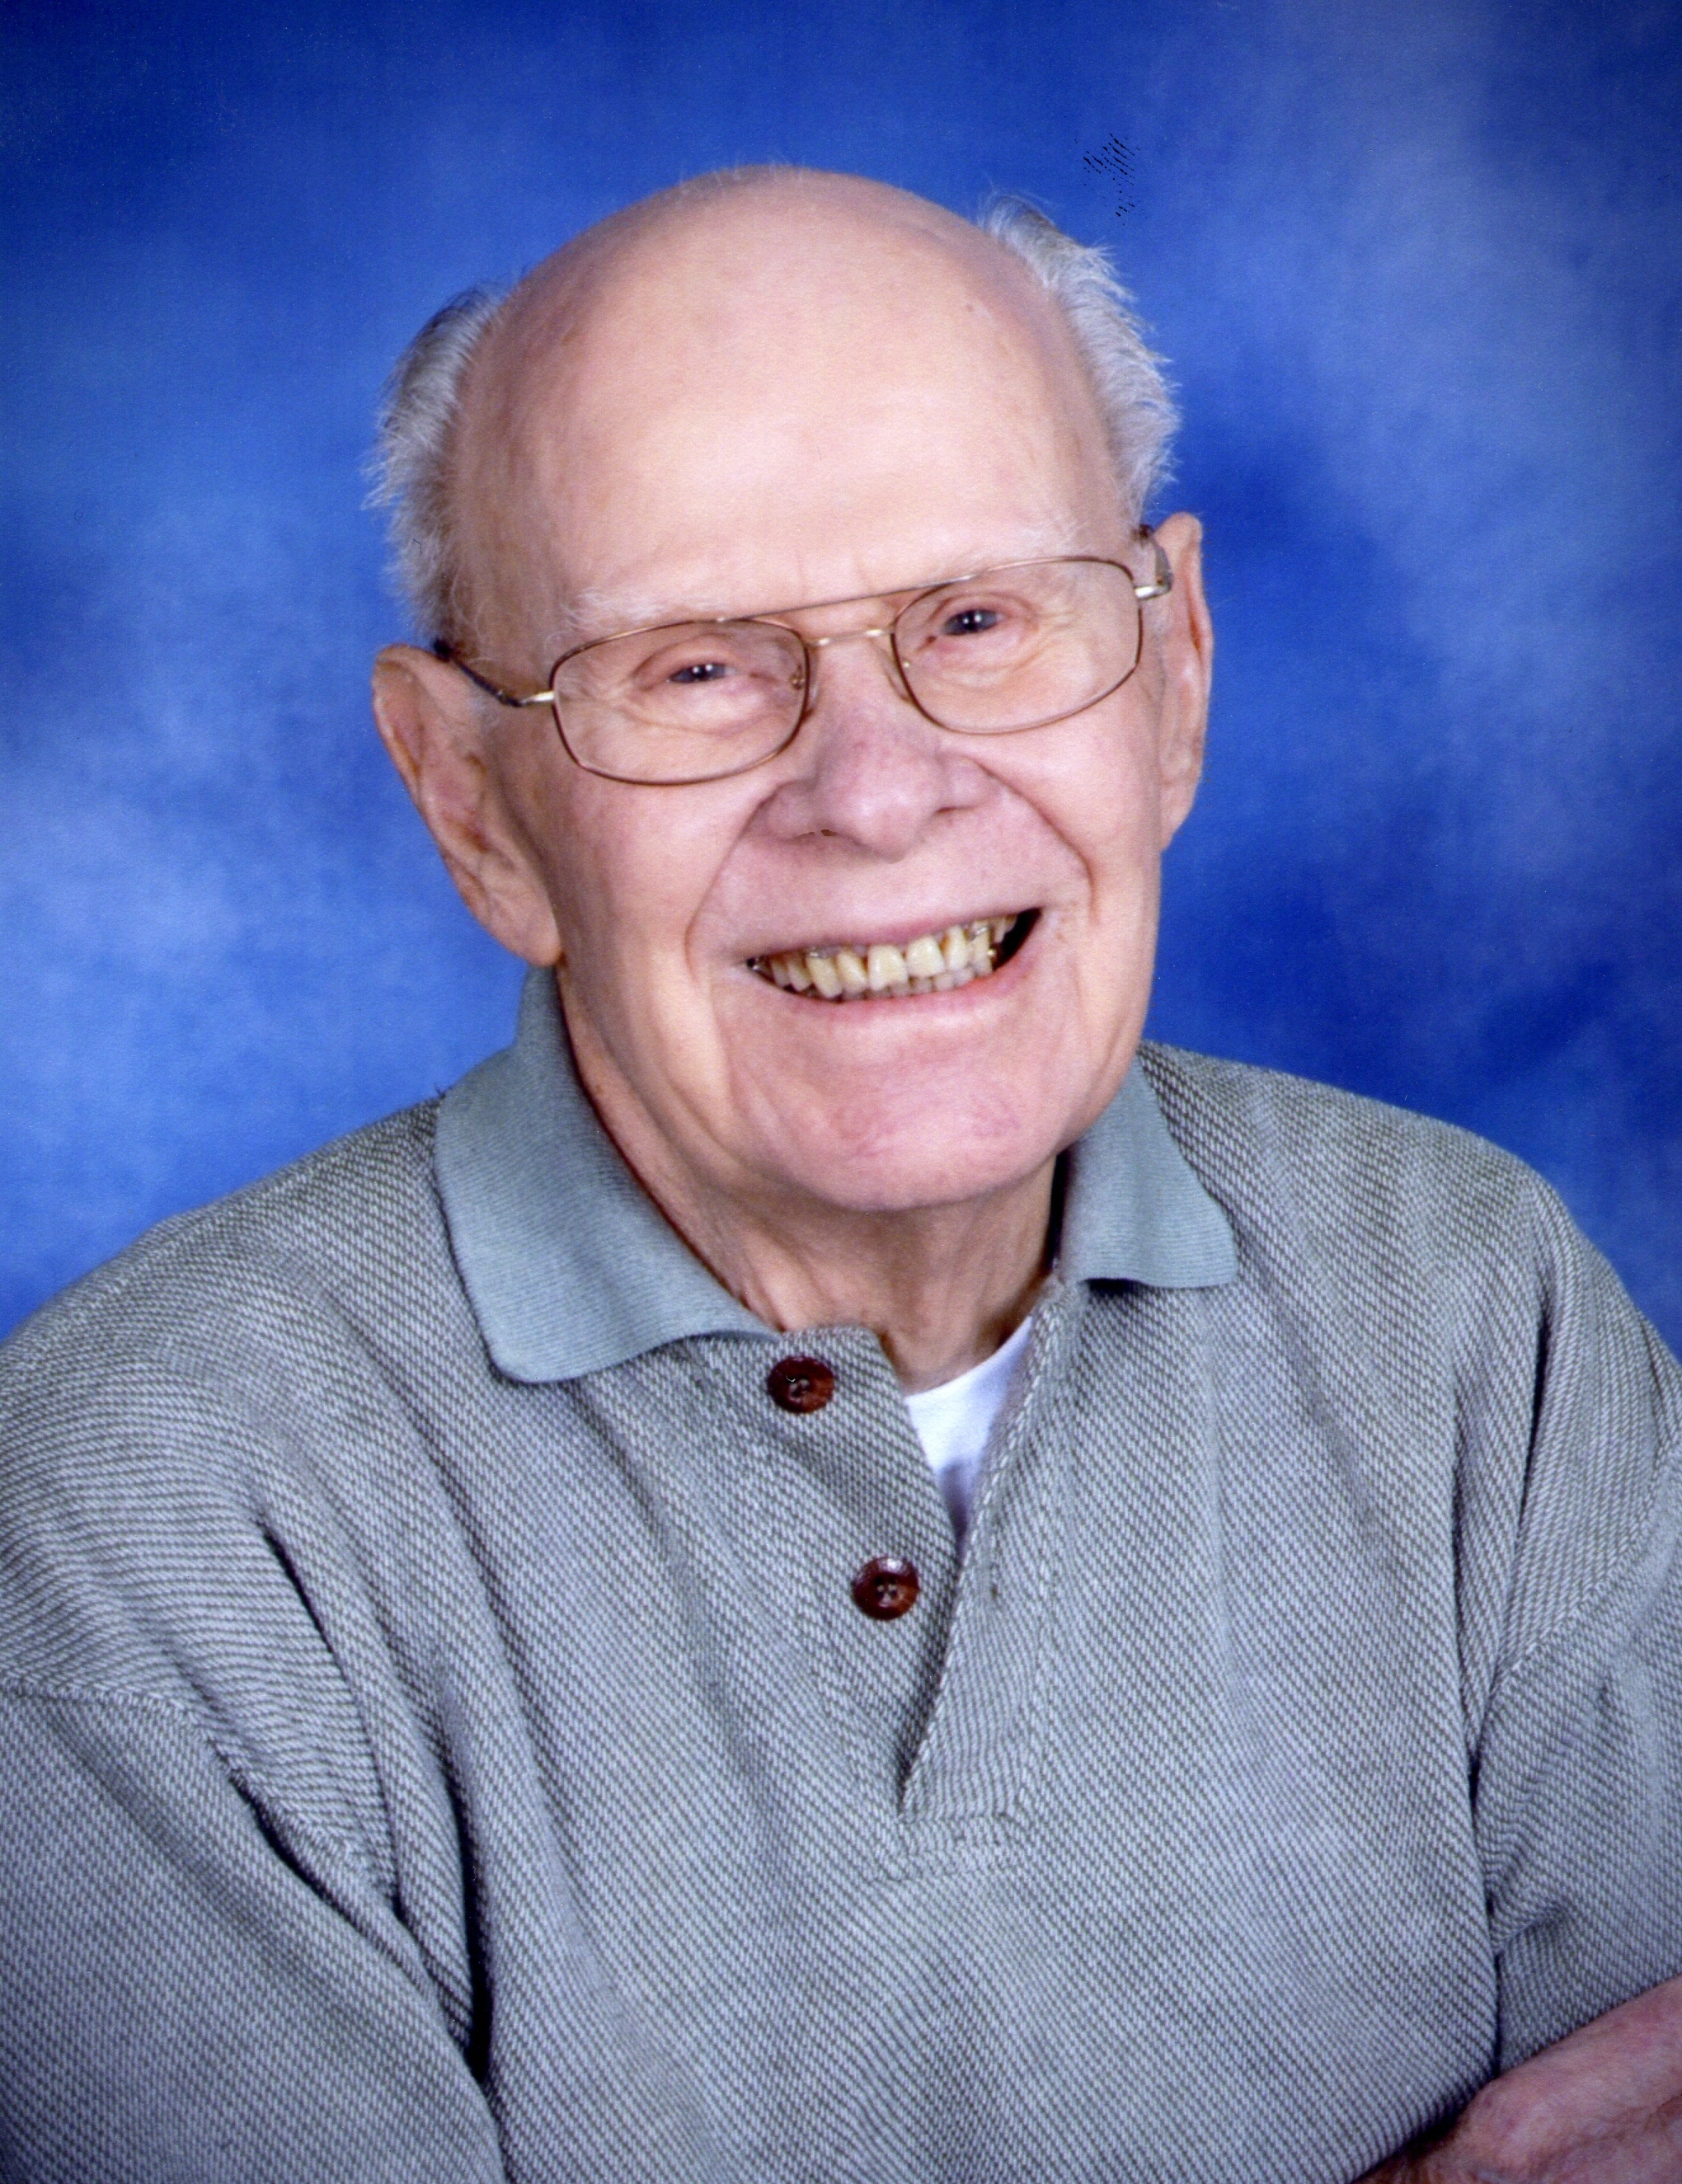 Herbert Walton Wheless Obituary - Visitation & Funeral